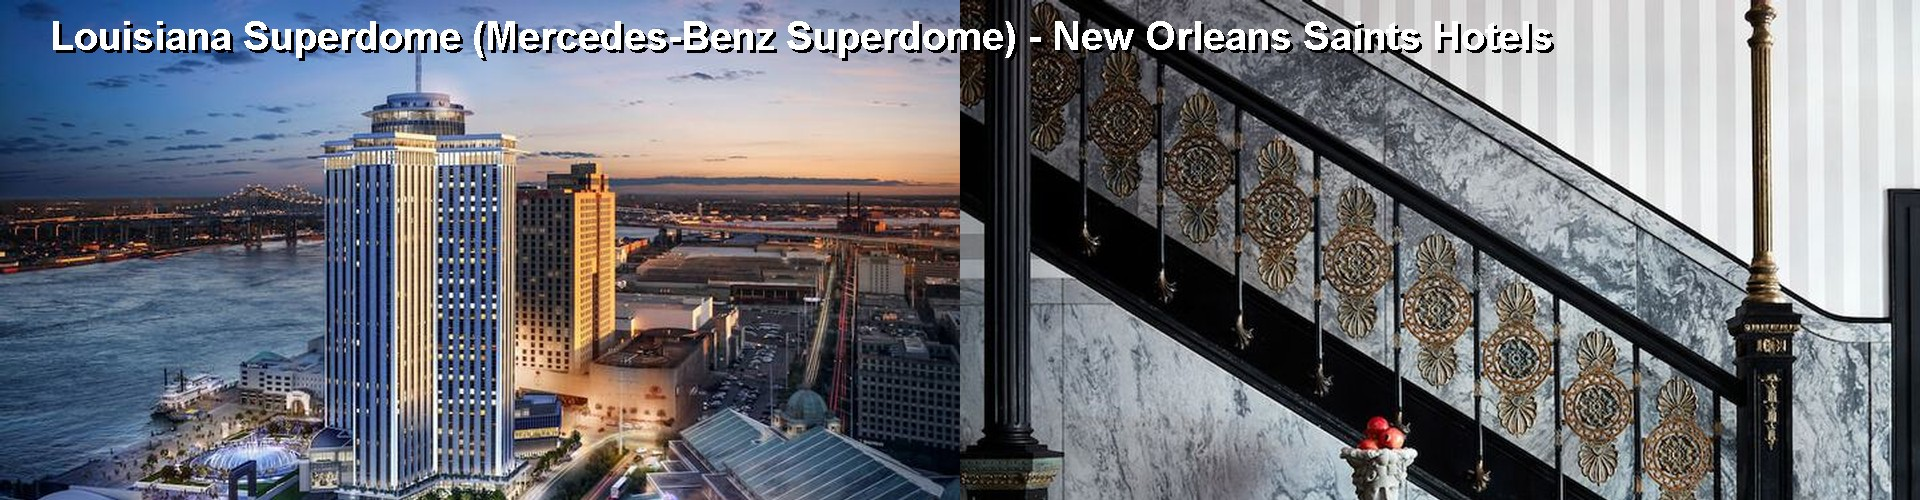 5 Best Hotels near Louisiana Superdome (Mercedes-Benz Superdome) - New Orleans Saints